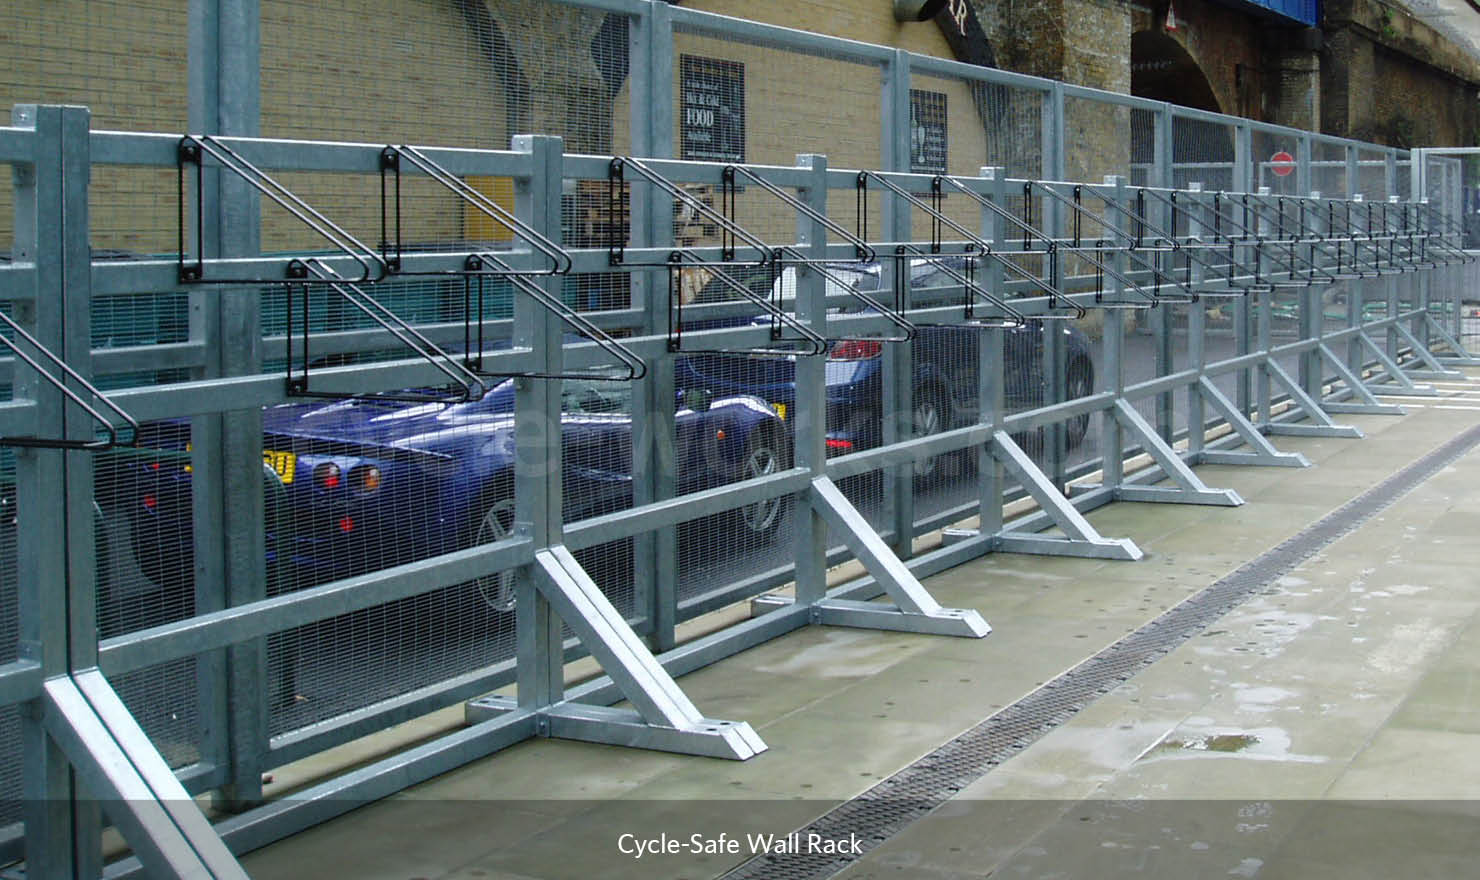 Cycle-Safe Wall Rack on Frame Works